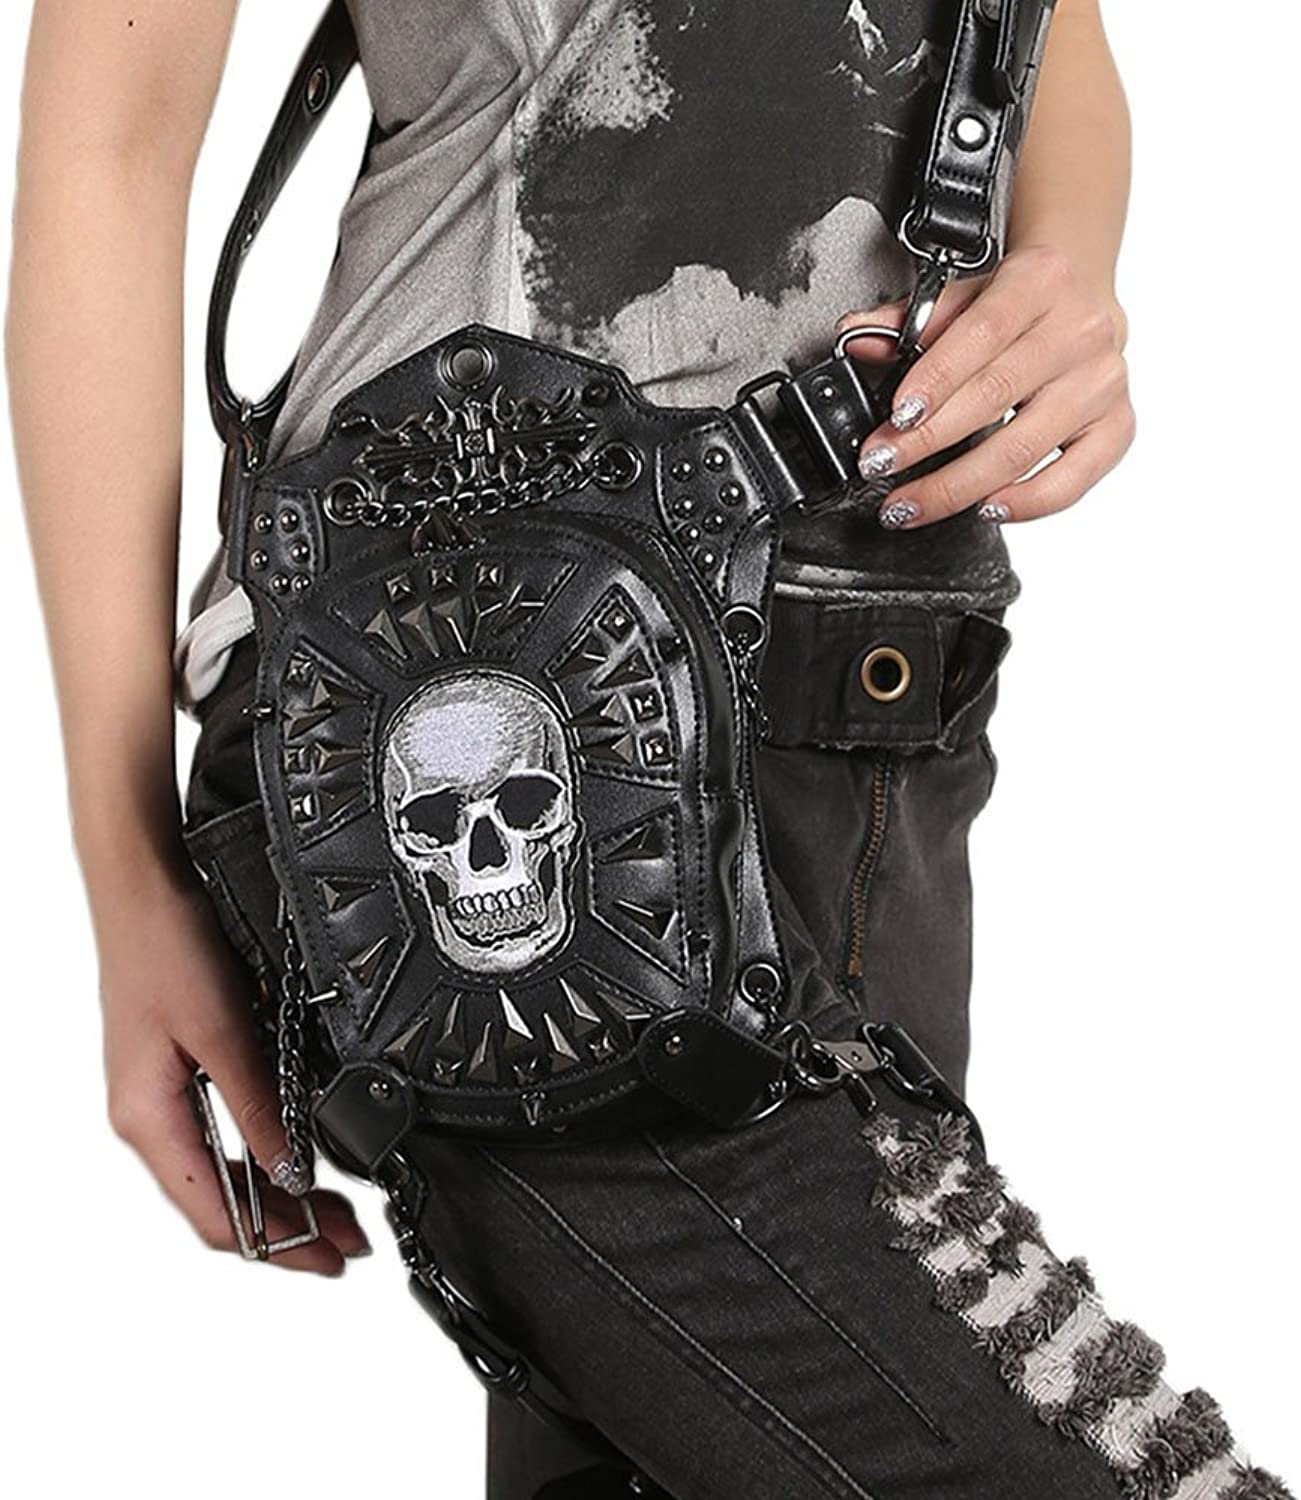 Xdtit Retro Skull Women Steampunk Leg Thigh Bag Black Rock Gothic Shoulder Waist Motorcycle Bag